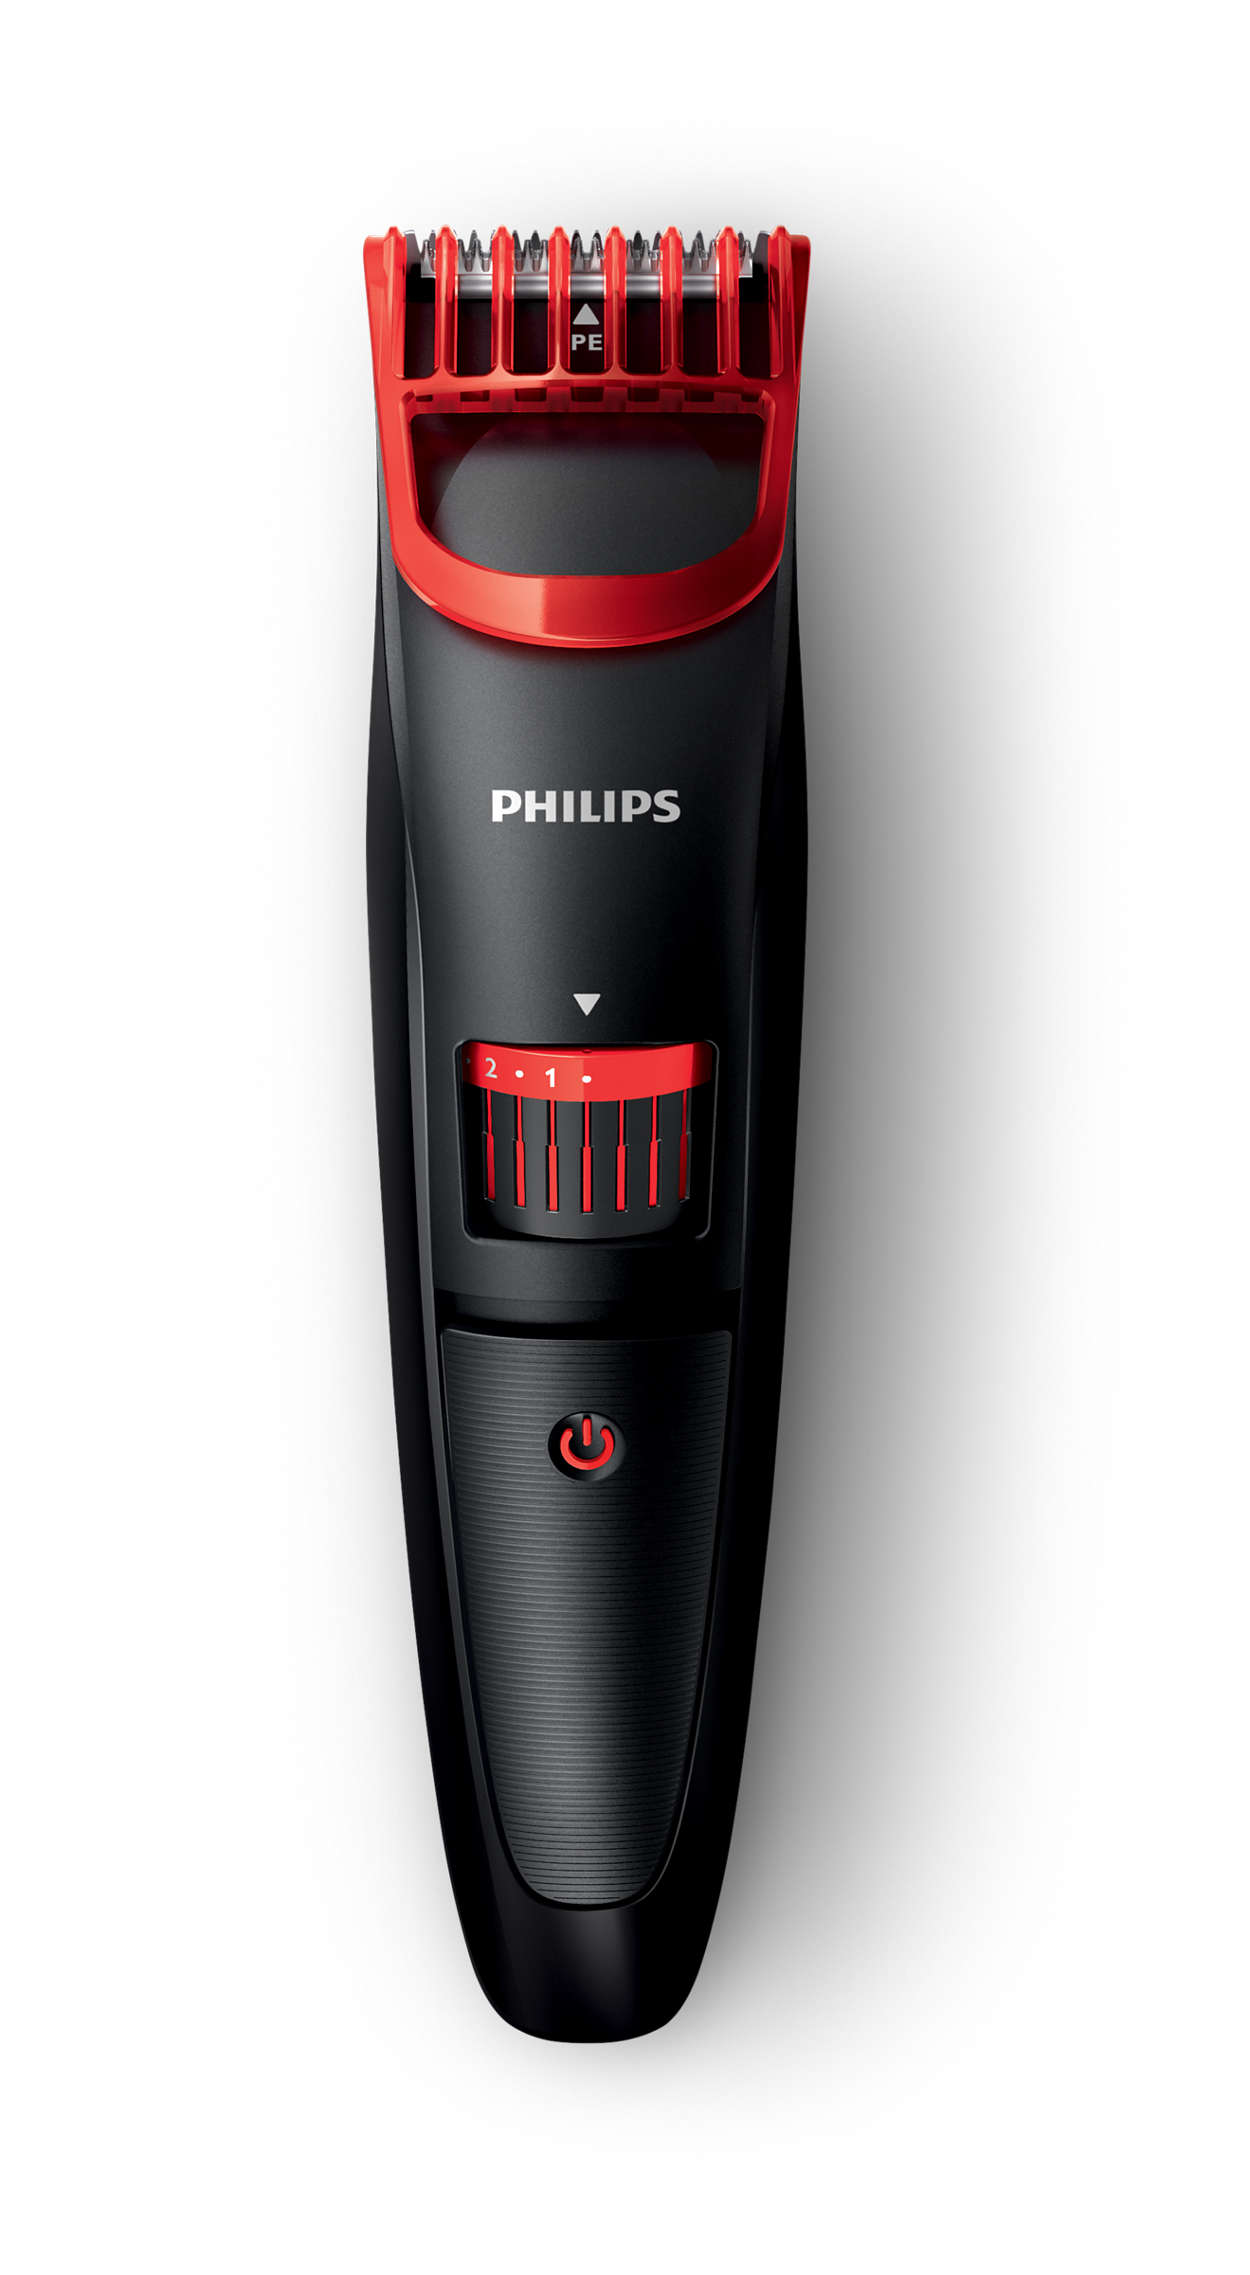 beardtrimmer series 1000 tondeuse barbe bt405 16 philips. Black Bedroom Furniture Sets. Home Design Ideas